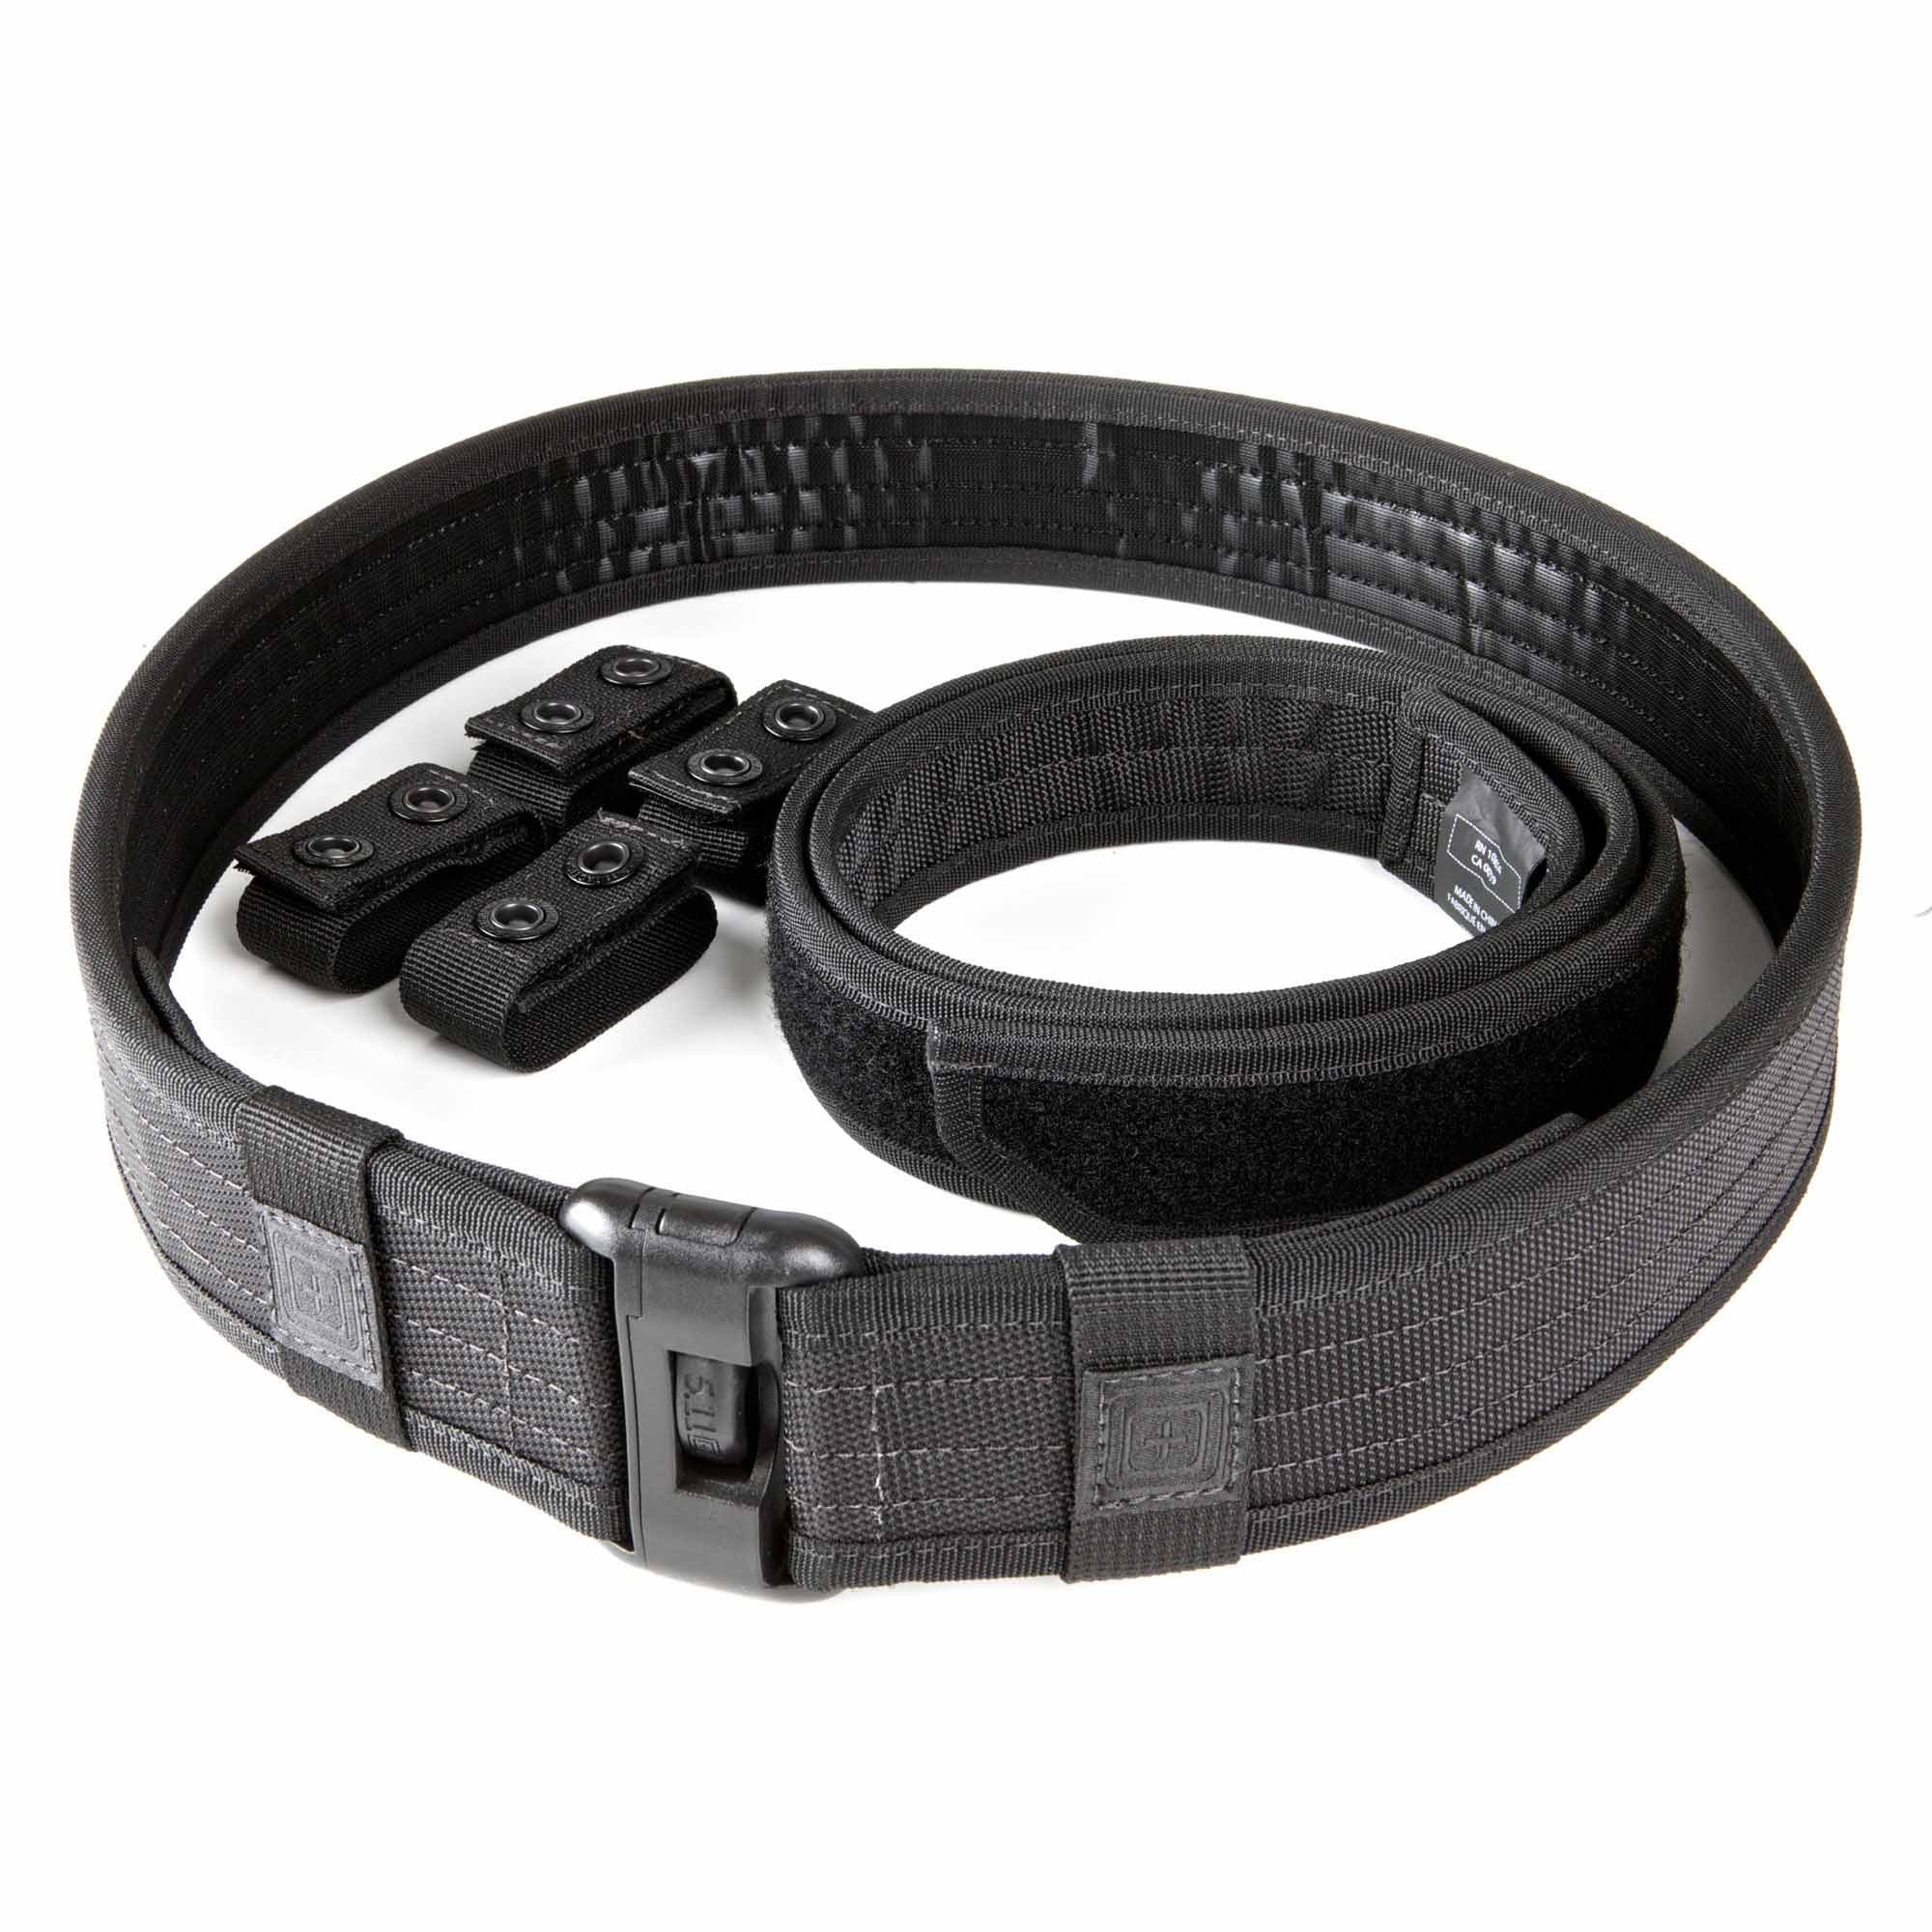 59505 Sierra Bravo Duty Belt Kit